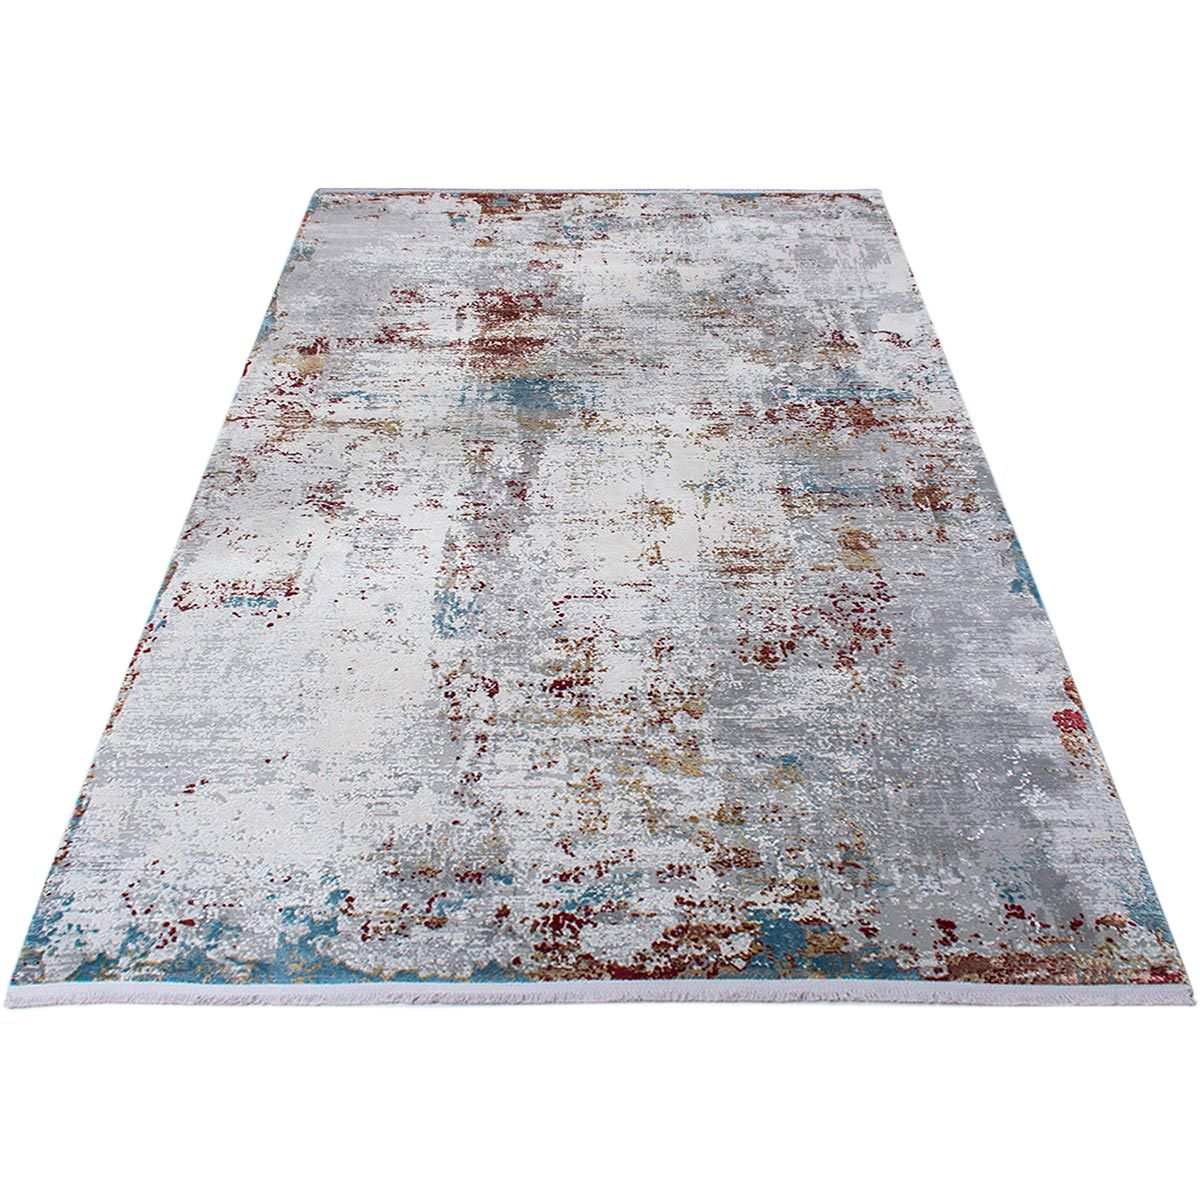 Jaipur Rug 02 Red/Blue/Yellow 6